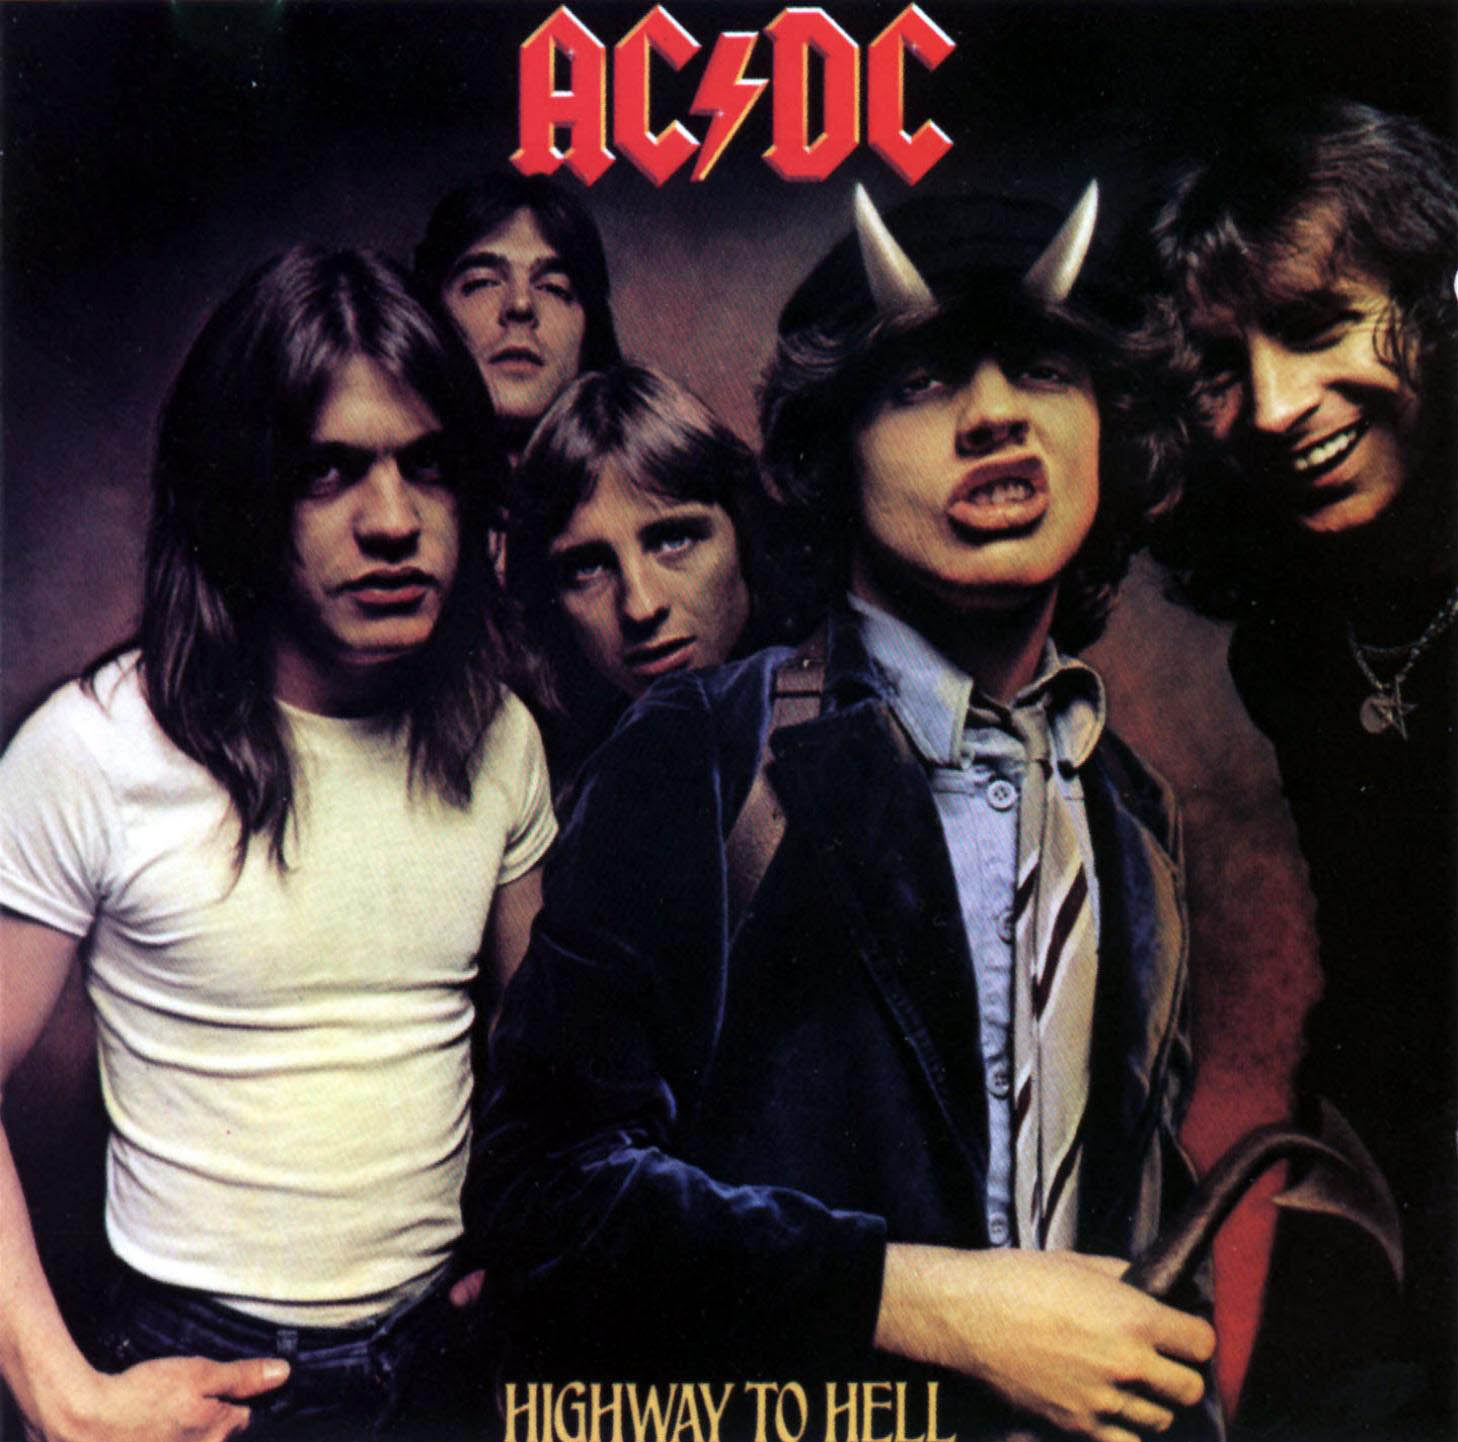 http://2.bp.blogspot.com/-G_oRyTaZhV4/TvoWv85-k4I/AAAAAAAAAIA/Gbi12WO1peA/s1600/acdc-highway_to_hell-frontal.jpg